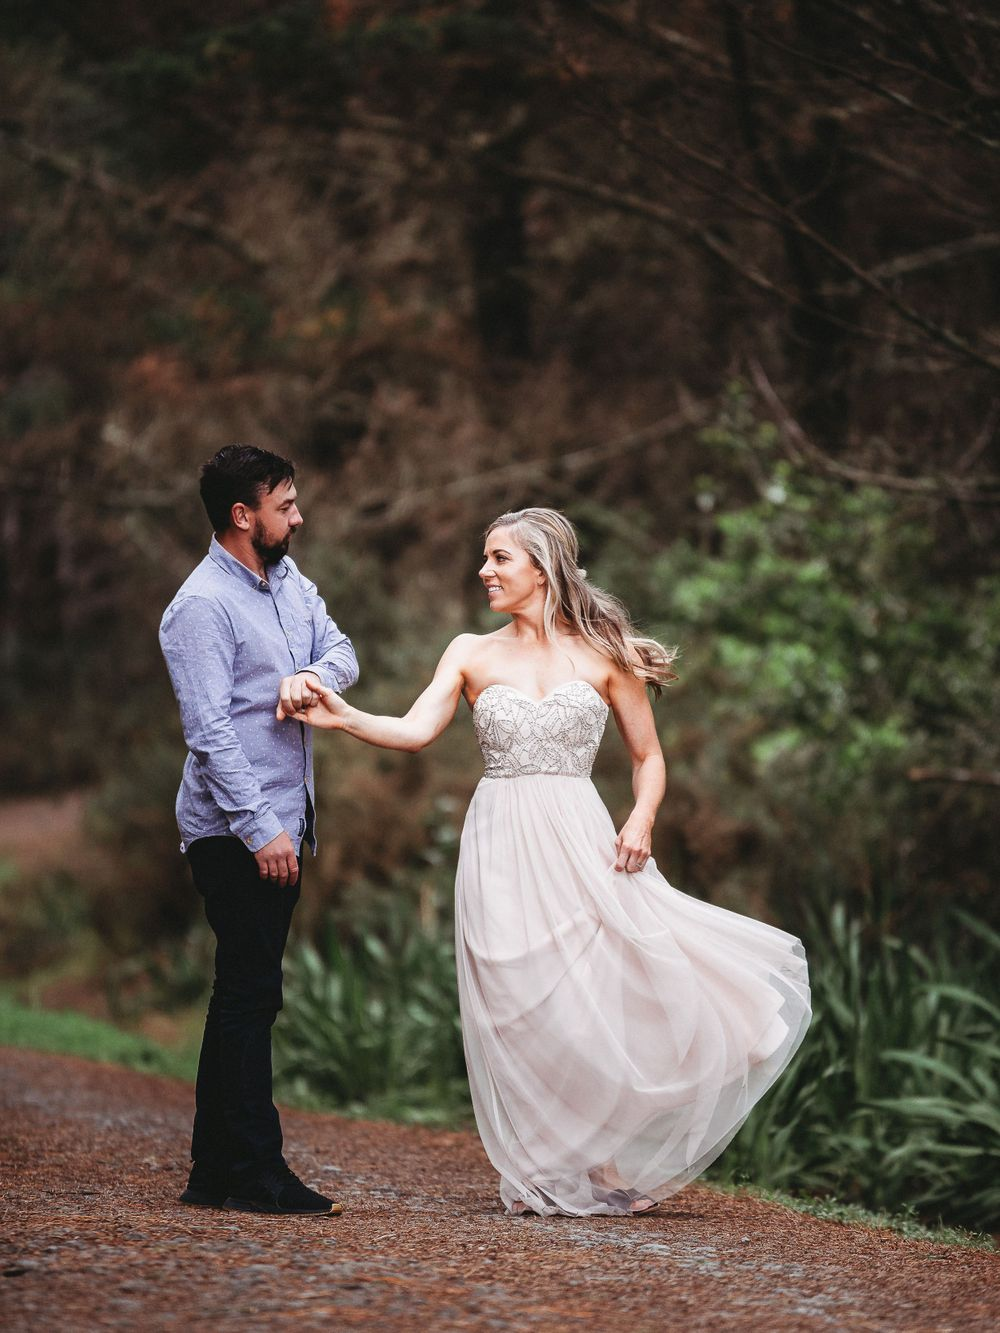 Just married by Coromandel Photographer